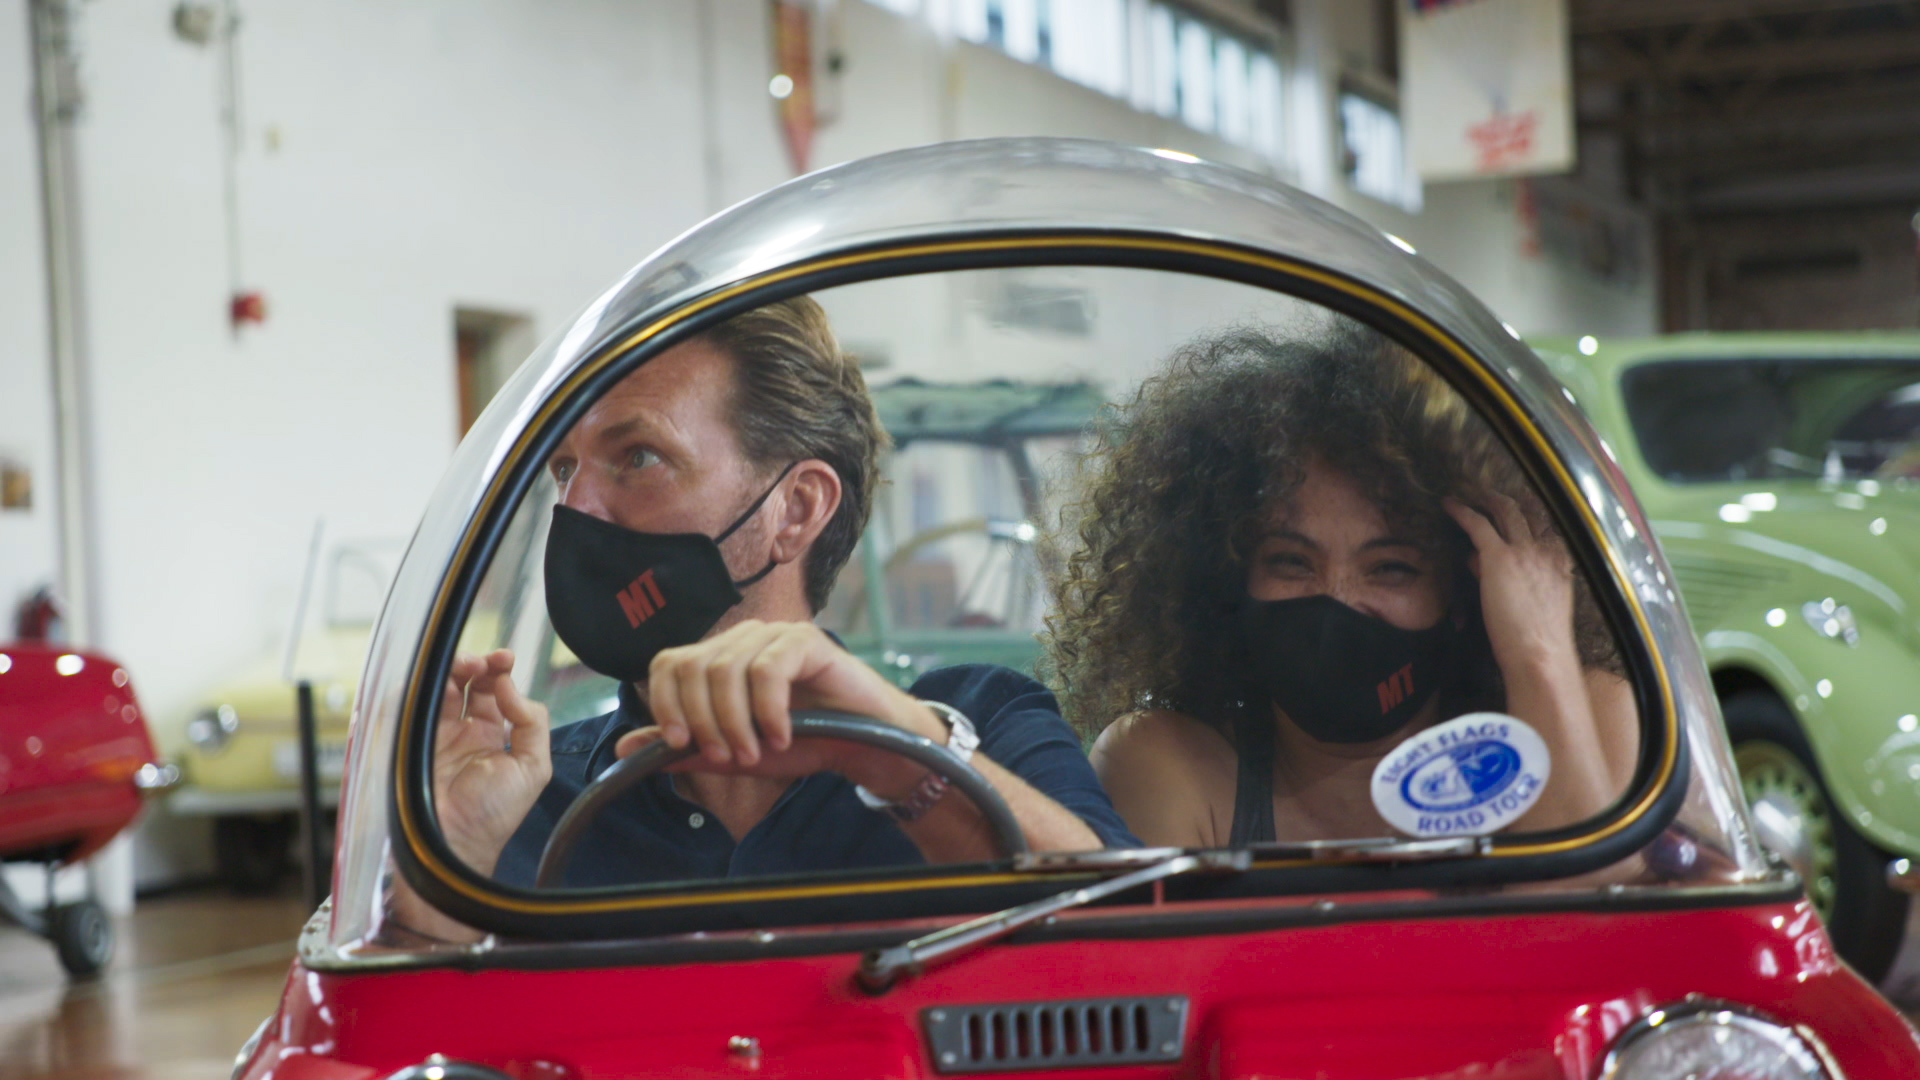 Drives Unexpected - Justin Bell - In a microcar